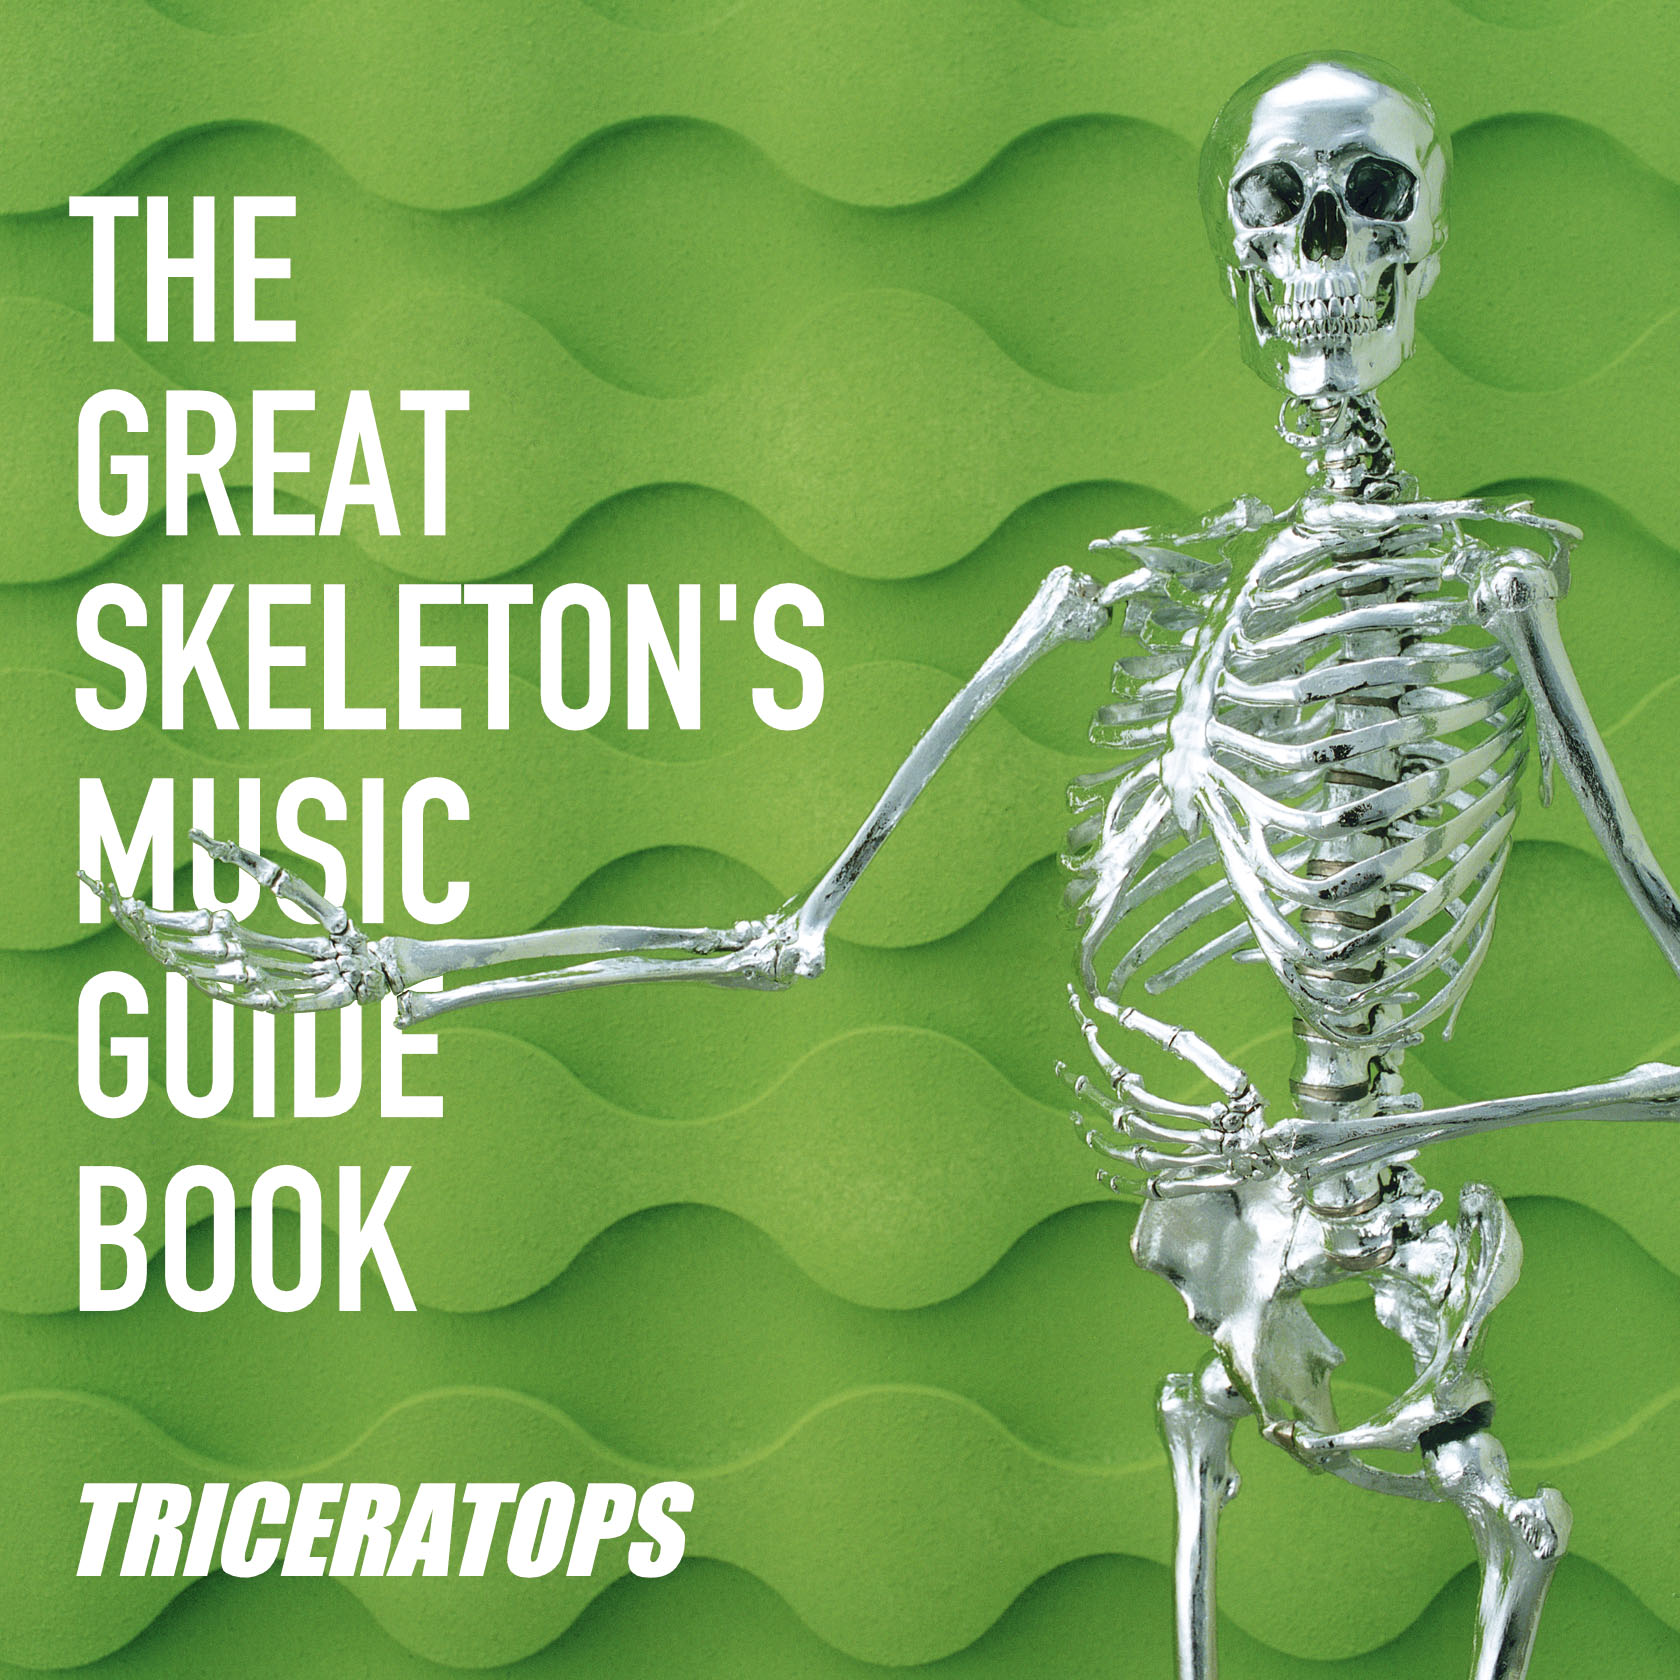 THE GREAT SKELTON'S MUSIC GUIDE BOOK